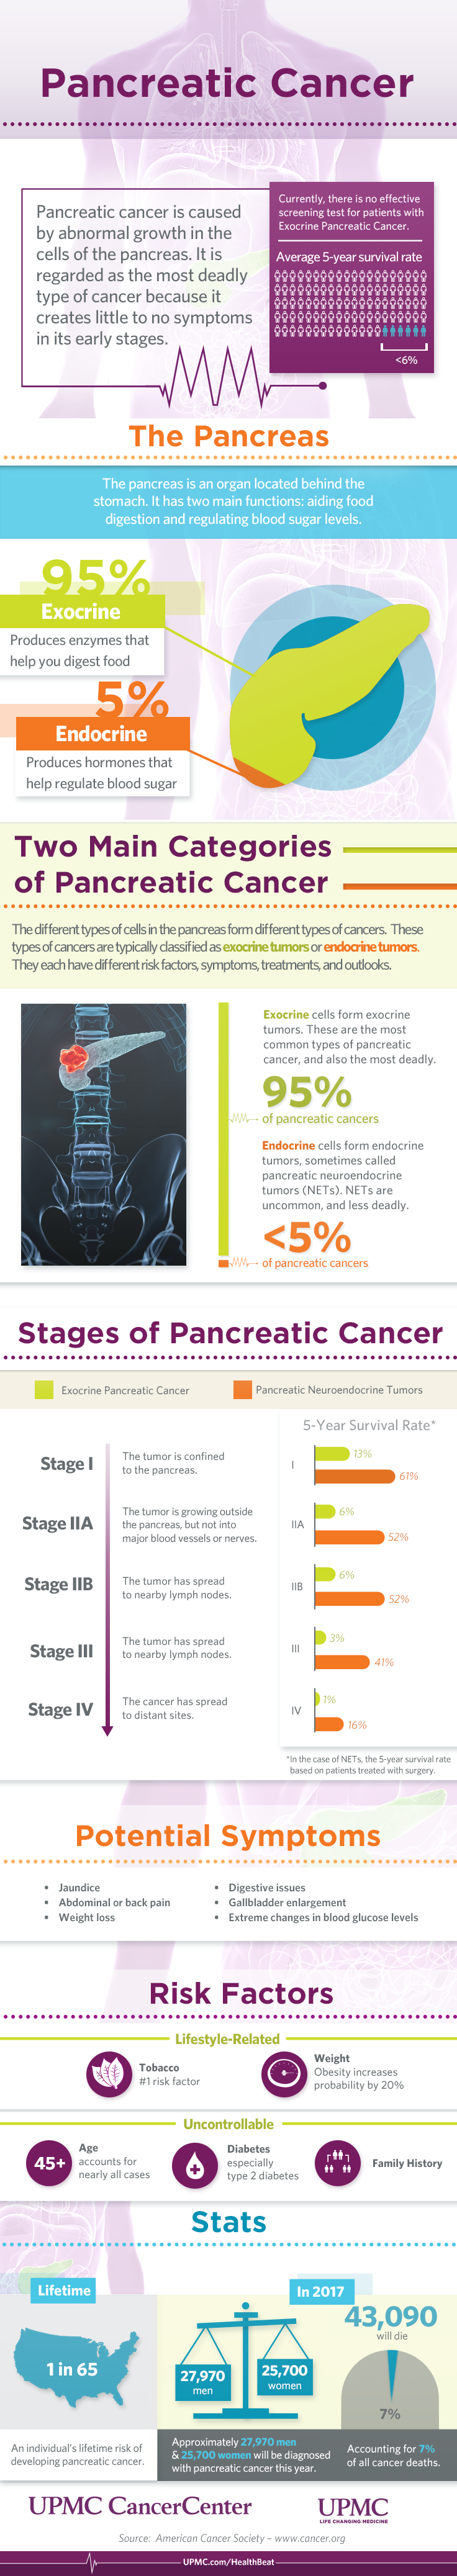 Infographic Pancreatic Cancer Risks, Types, Stages Upmc. Nutrition After Bariatric Surgery. Photography Online Colleges Cloud Based Mdm. Telemedicine Cpt Codes Vision Insurance Quote. Master Of International Relations. Chiropractor Goshen Indiana Www Fiat500 Com. Dodge Dealer Orange County Practice Pmp Exam. Motorcycle Insurance Indiana. Re Financing A Car Loan Colleges In Ruston La